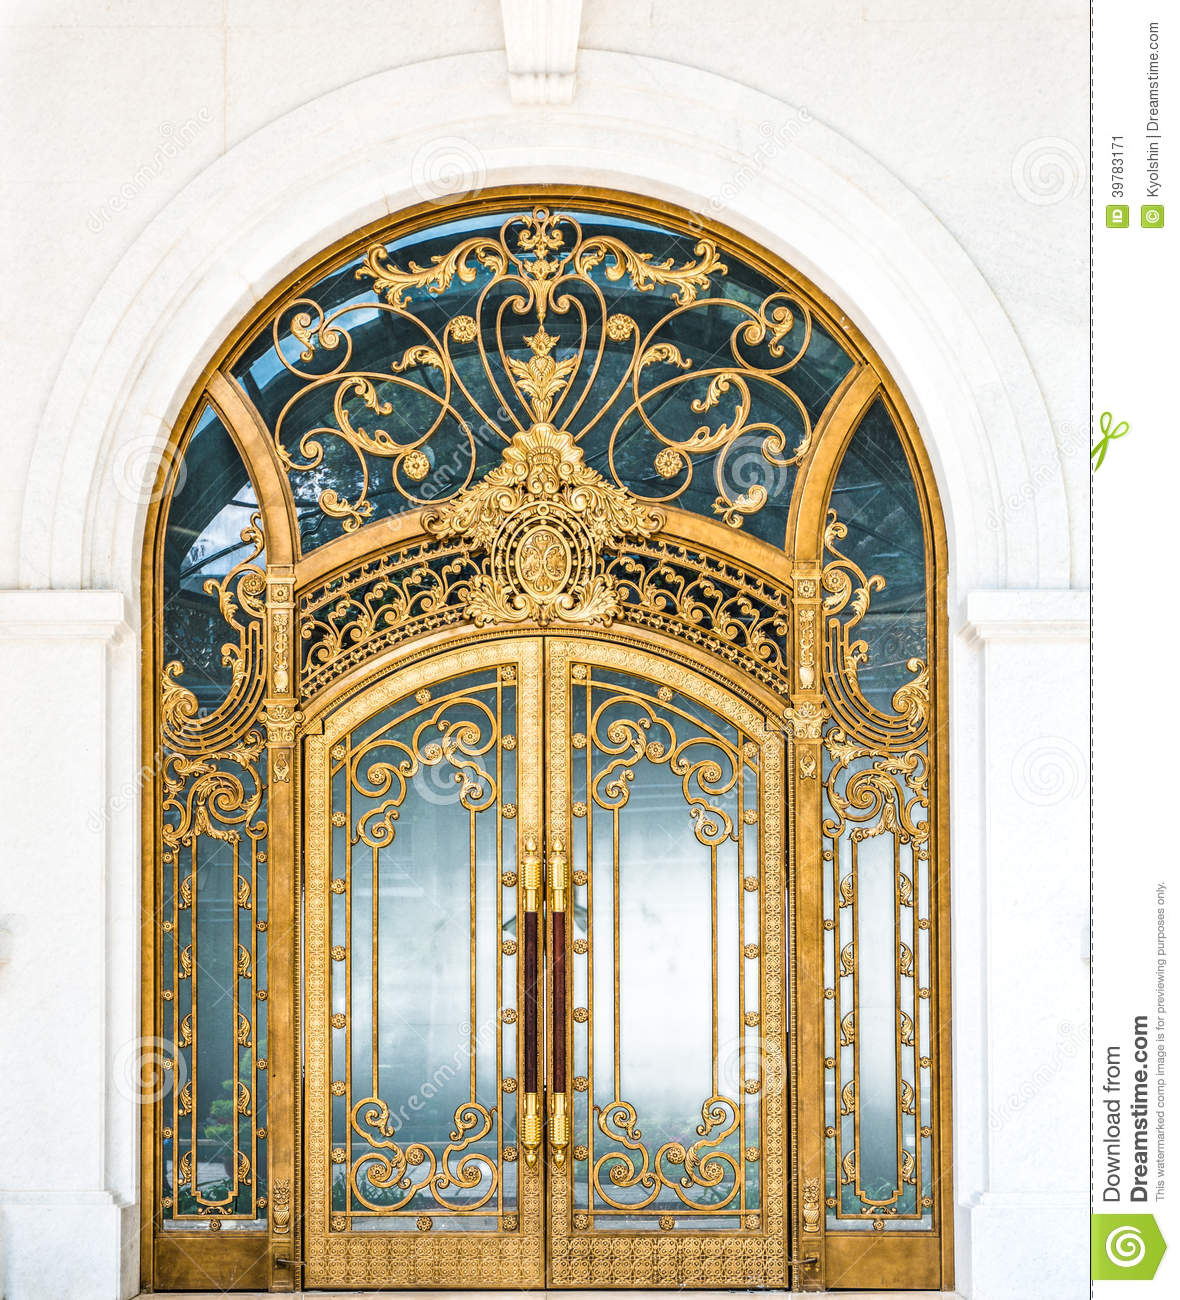 1300 #A77A24 Closed Door Of Building With Gold Ornate Pattern. Stock Photo Image  picture/photo Ornate Front Doors 39791180